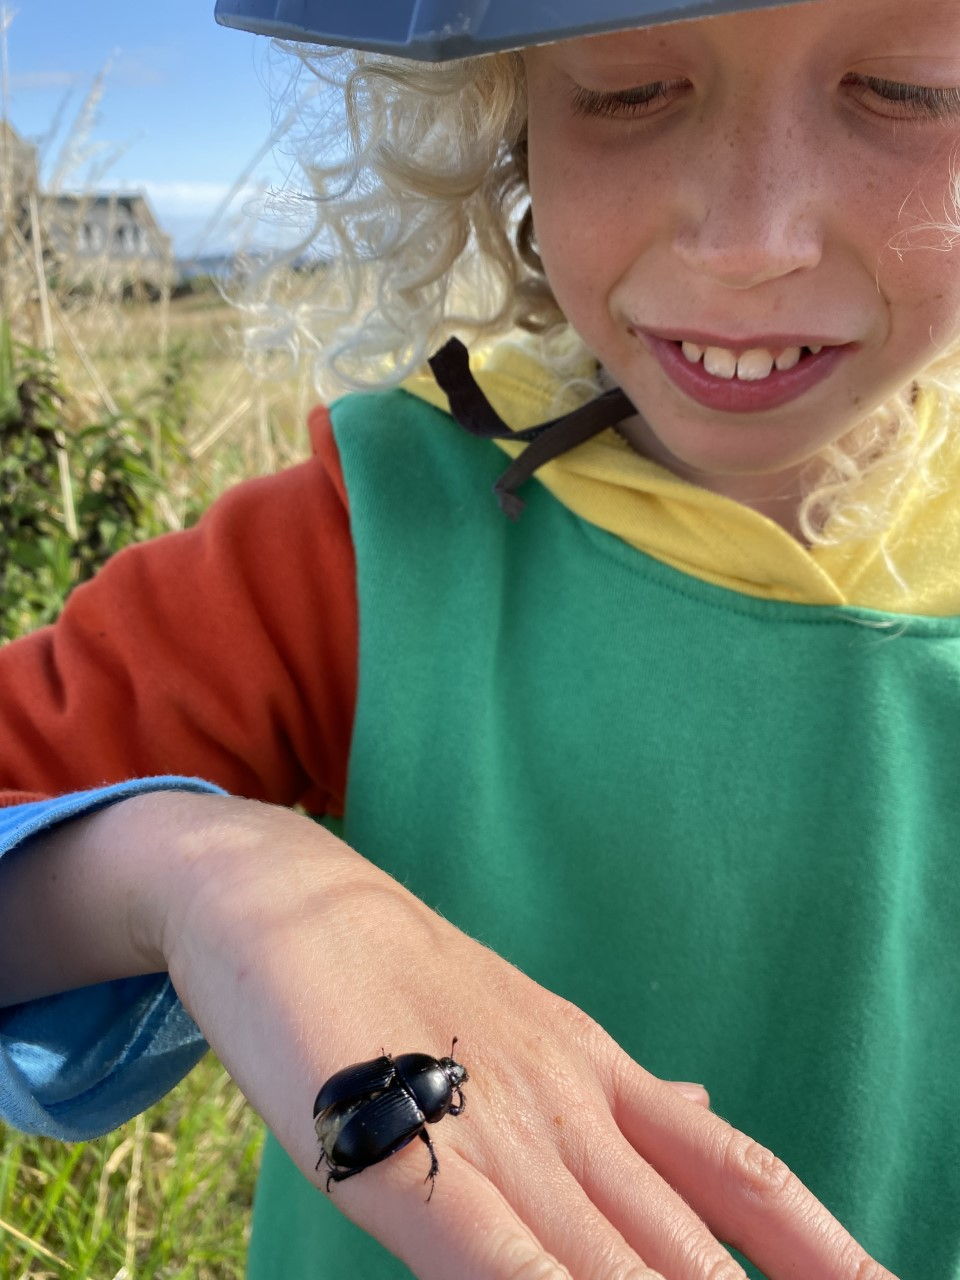 child staring at a beetle on his hand